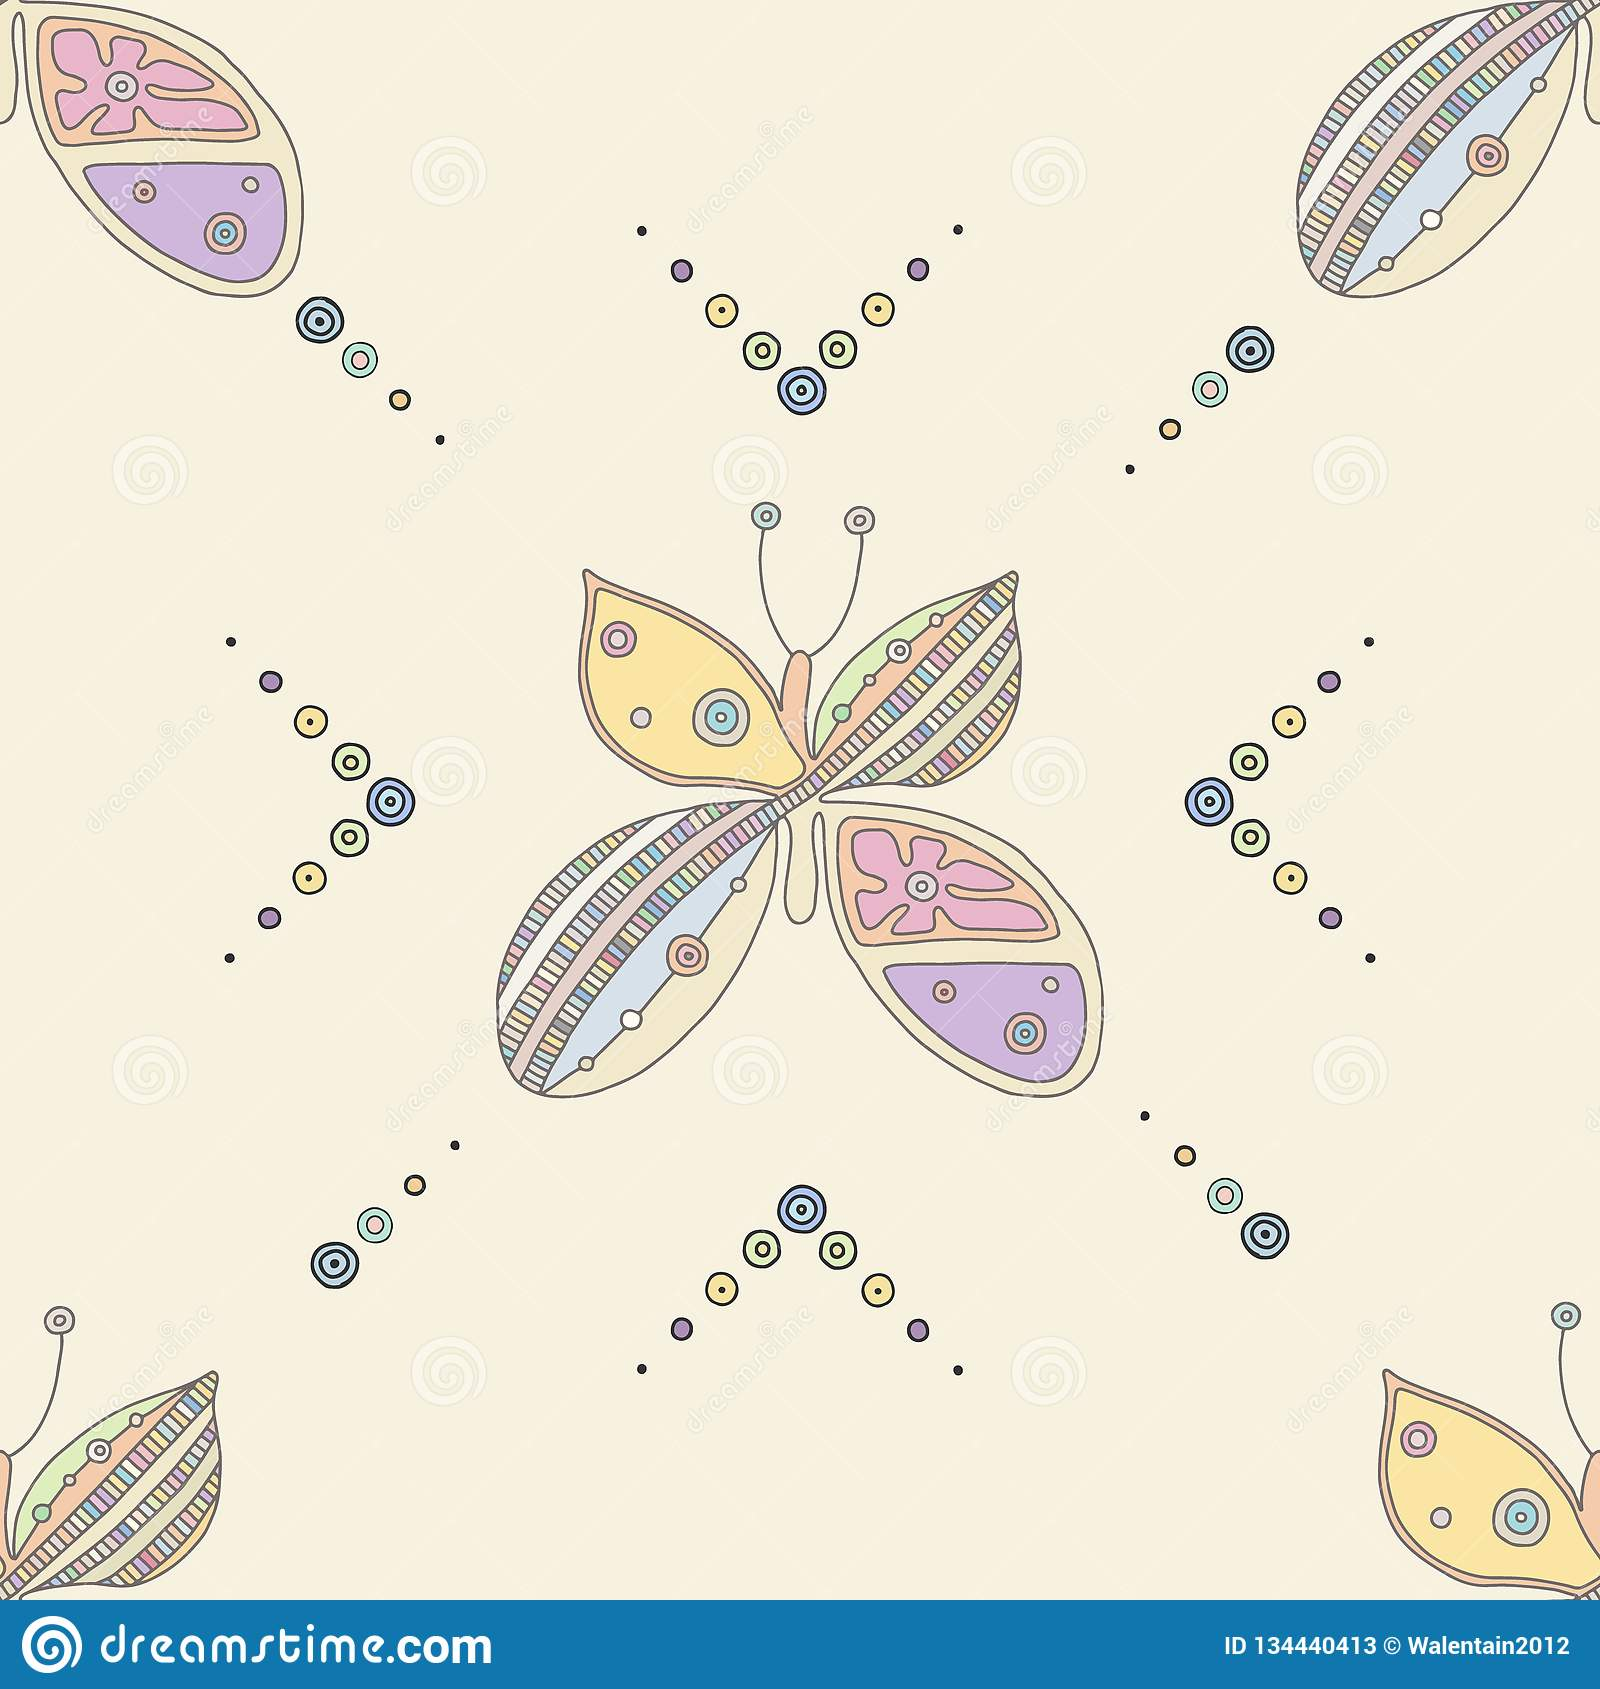 Vector hand drawn colorful seamless pattern, illustration of butterfly with decorative geometrical elements, lines, dots. Line